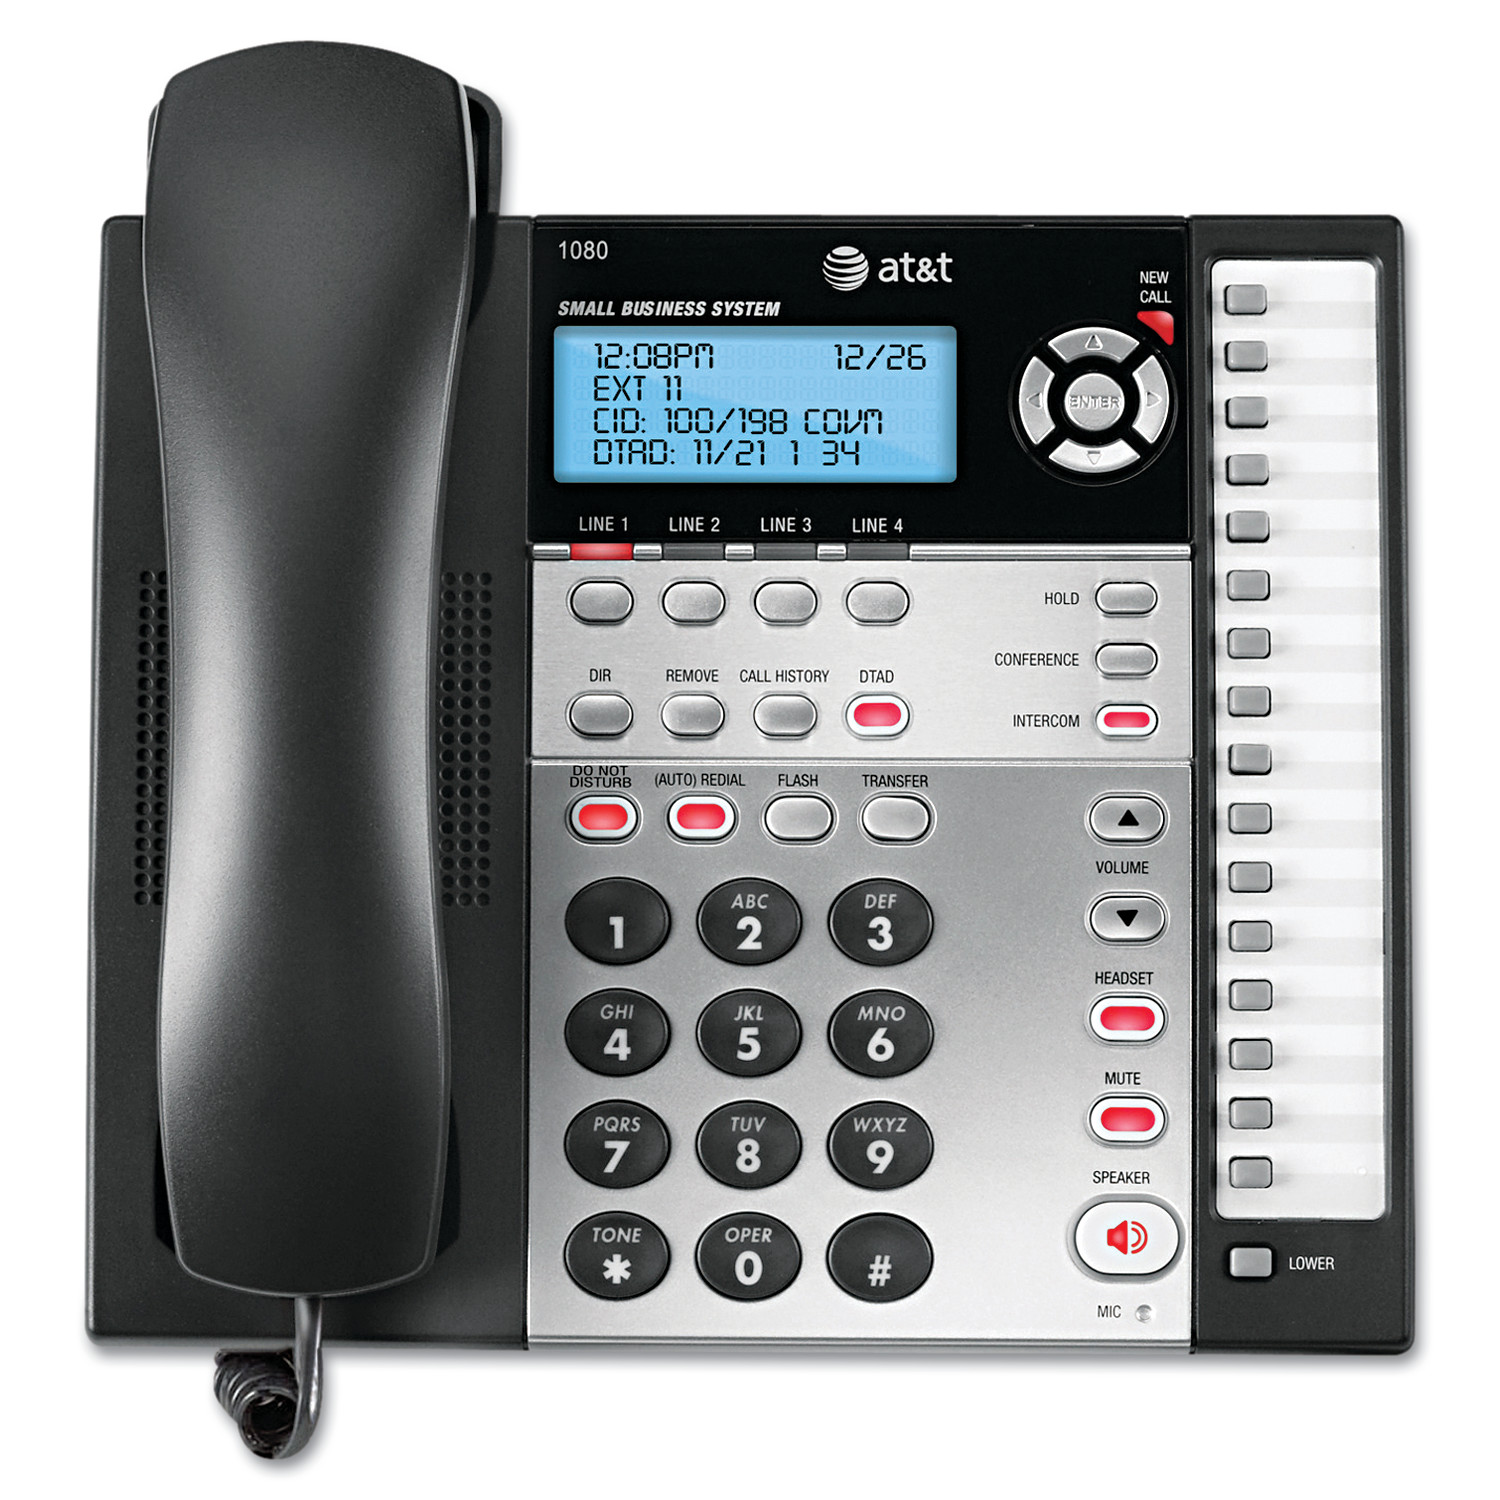 AT&T 1080 Corded Four-Line Expandable Telephone, Caller ID and Answering Machine by VTech Communications